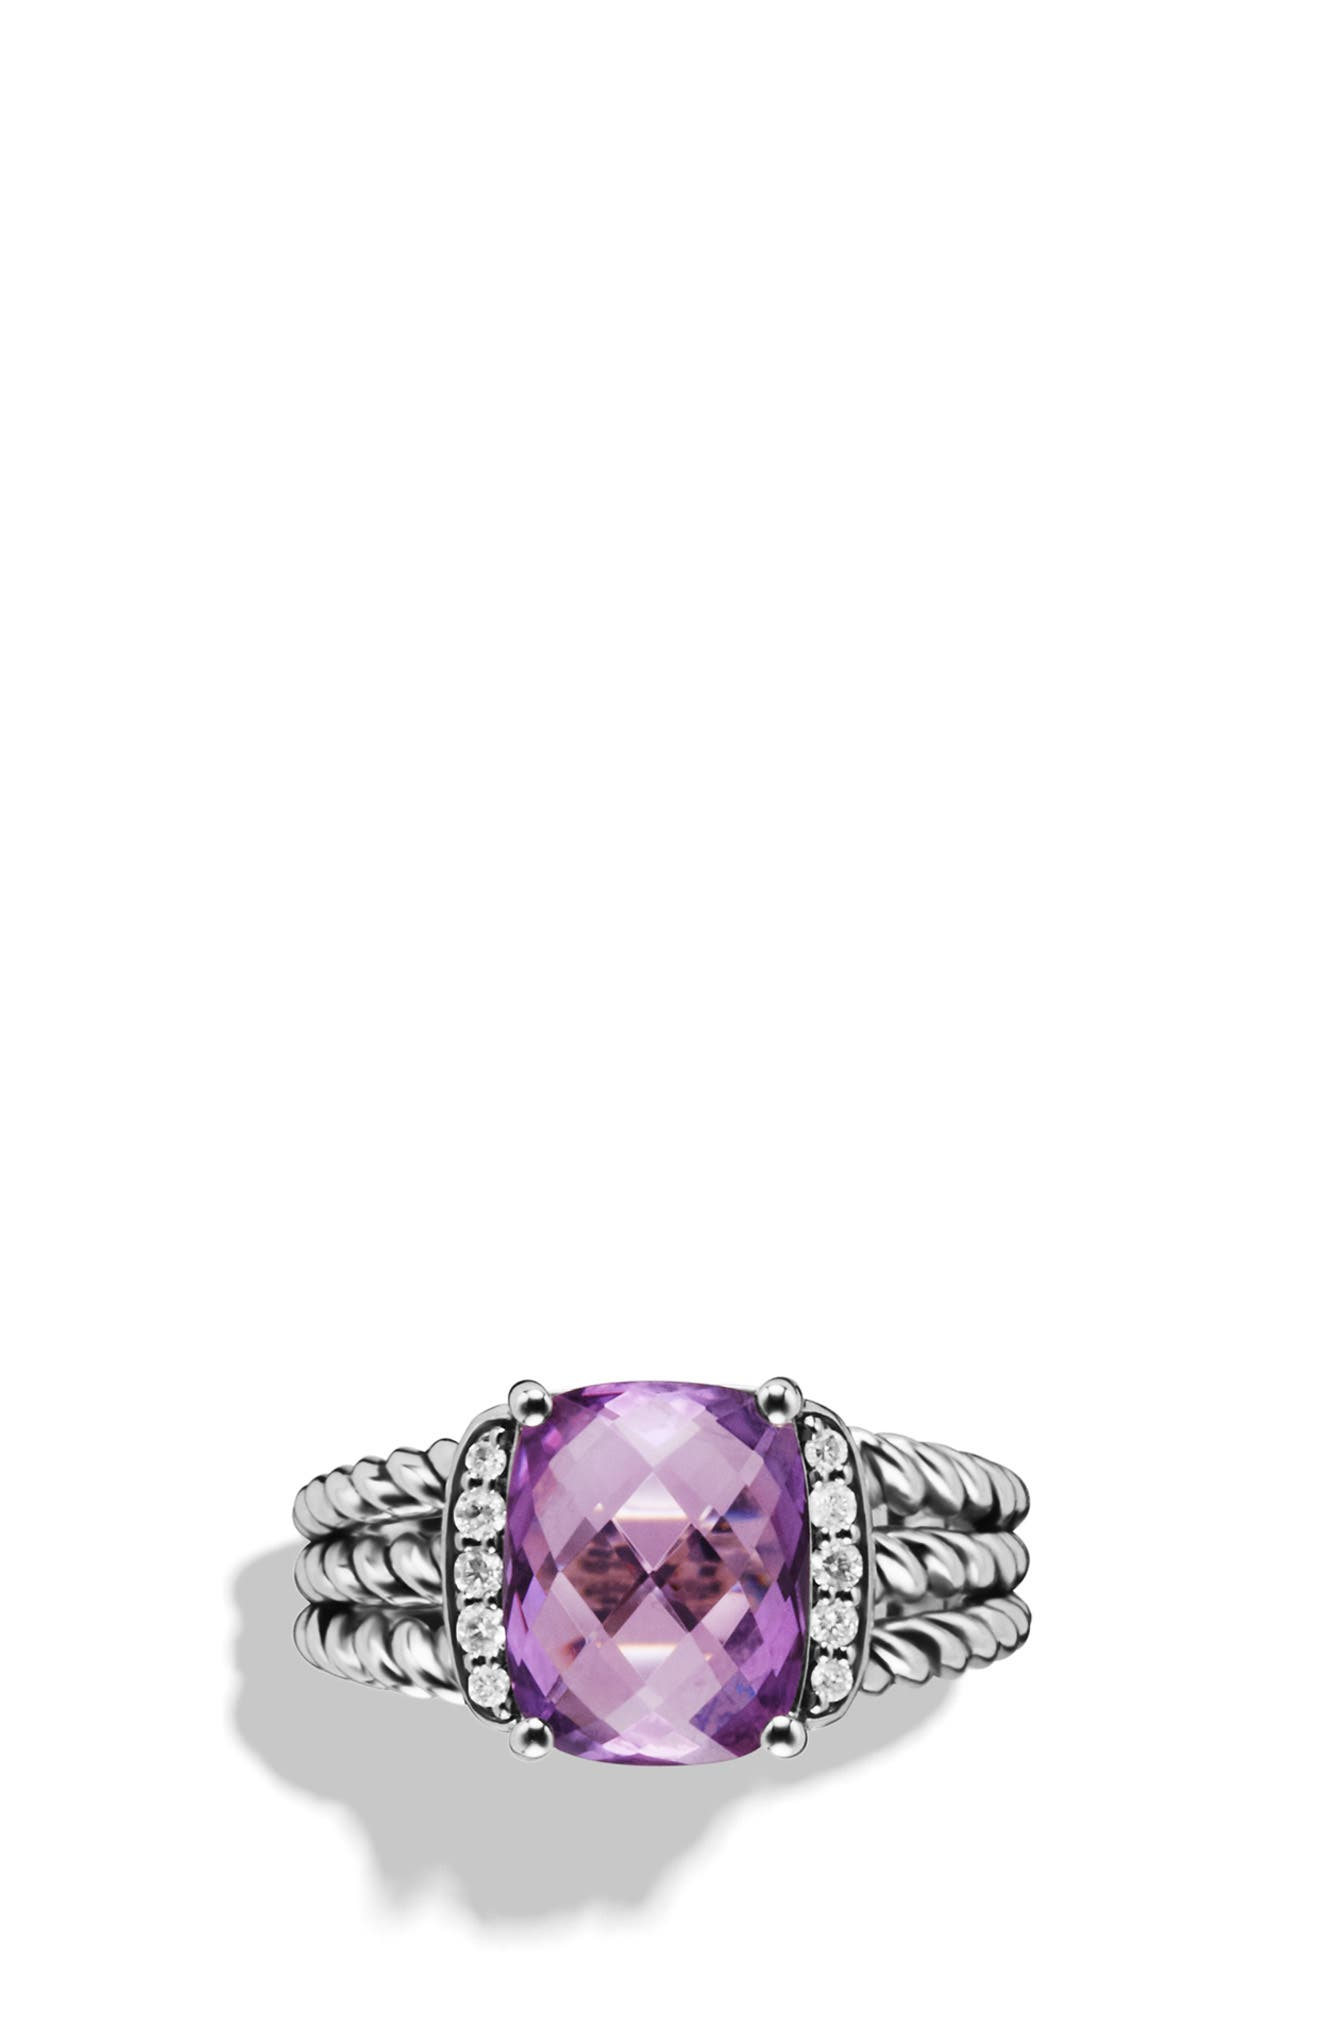 'Wheaton' Petite Ring with Semiprecious Stone & Diamonds,                             Main thumbnail 1, color,                             040